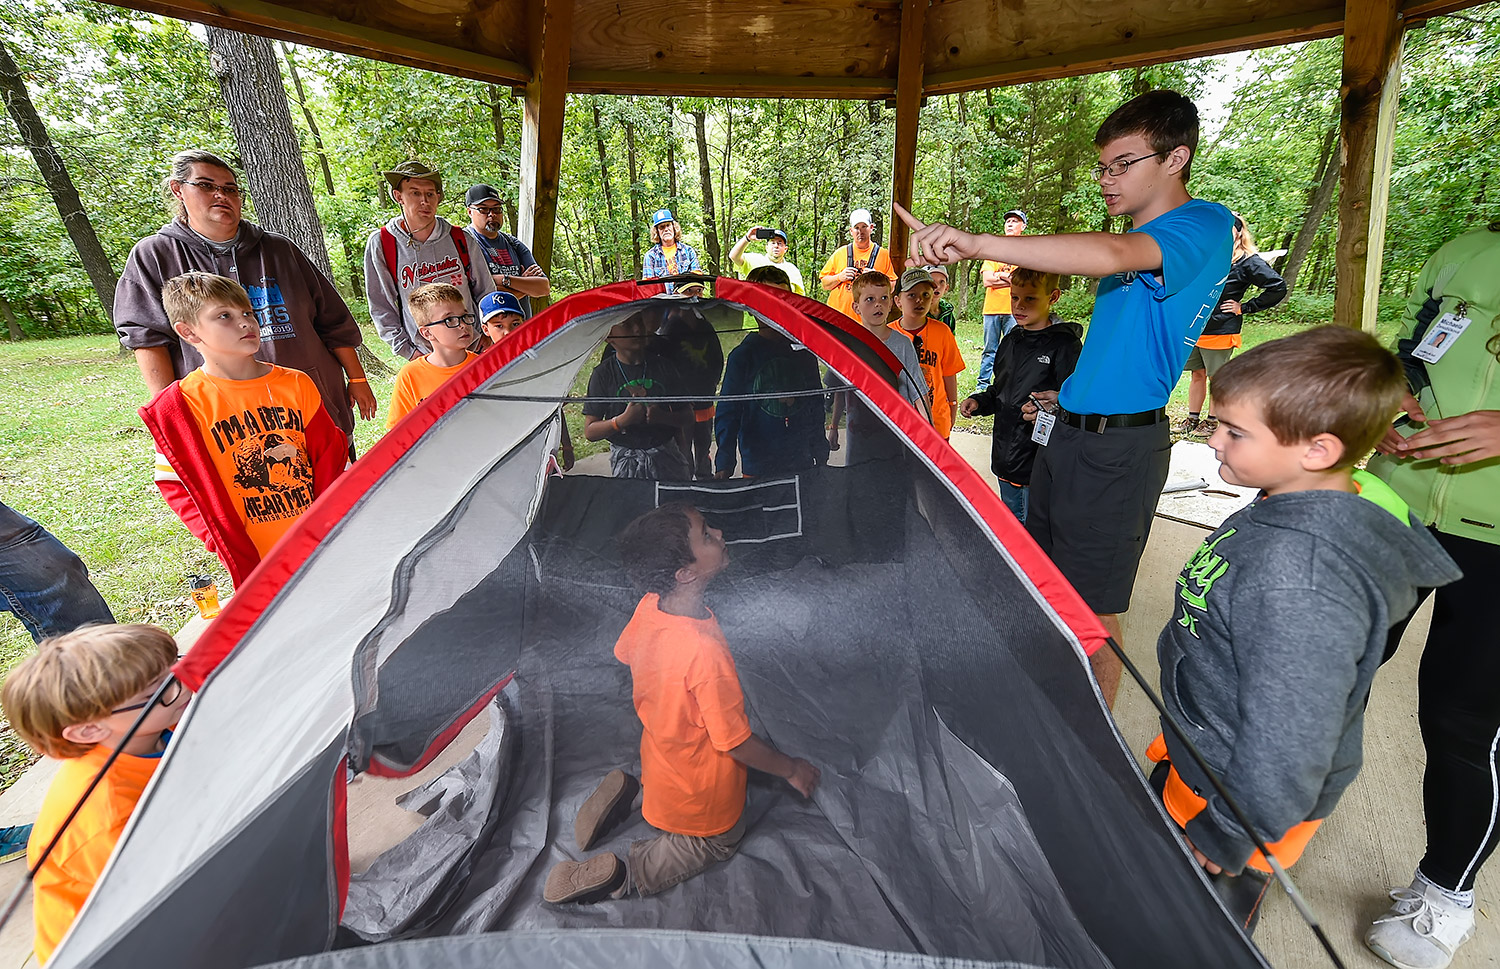 Four Tips For Getting New Cub Scouts To Try Camping